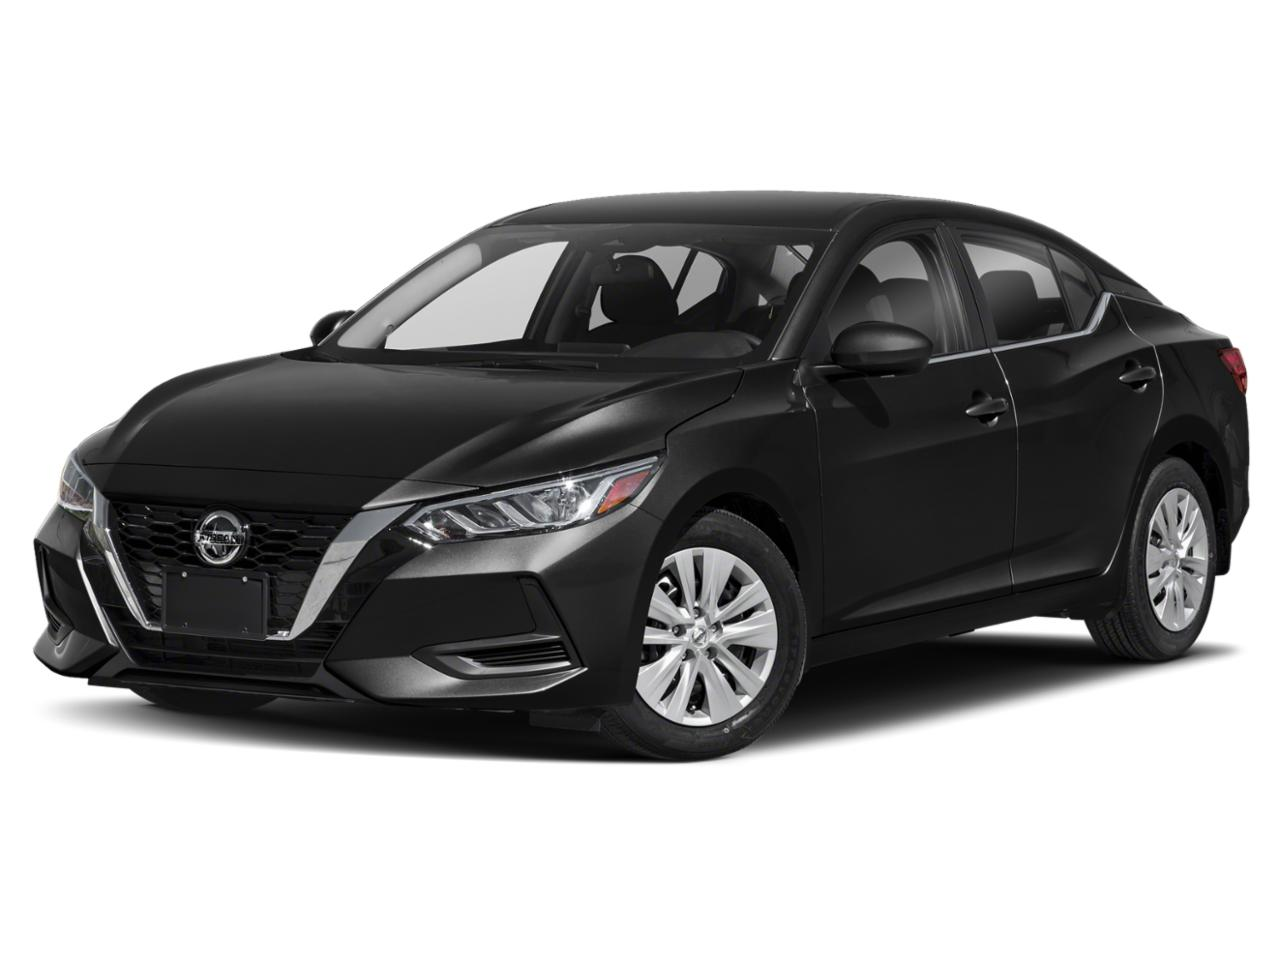 2020 Nissan Sentra Vehicle Photo in Plainfield, IL 60586